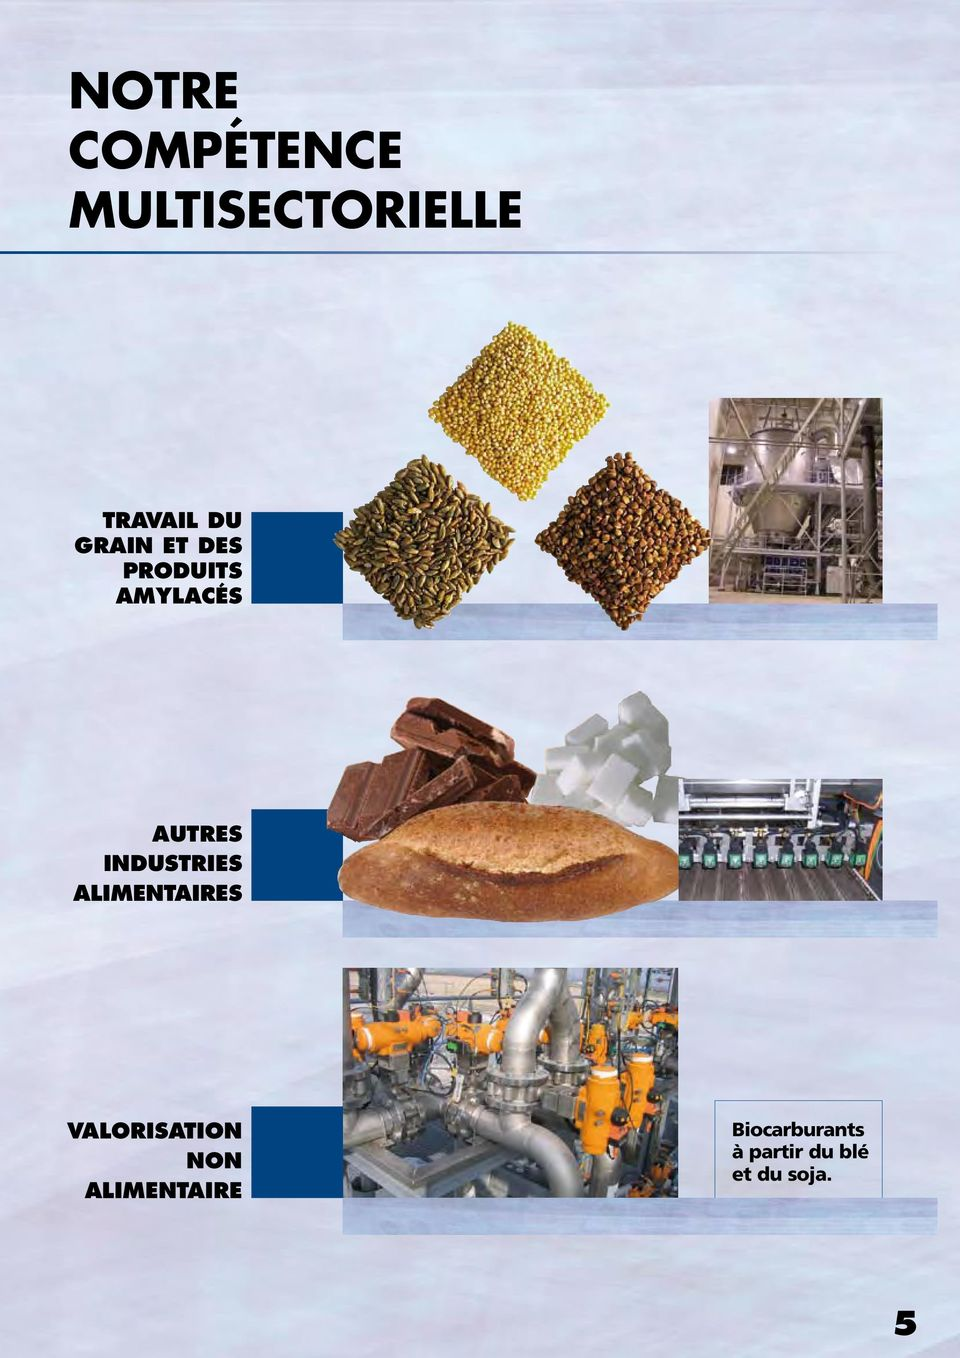 industries alimentaires valorisation non